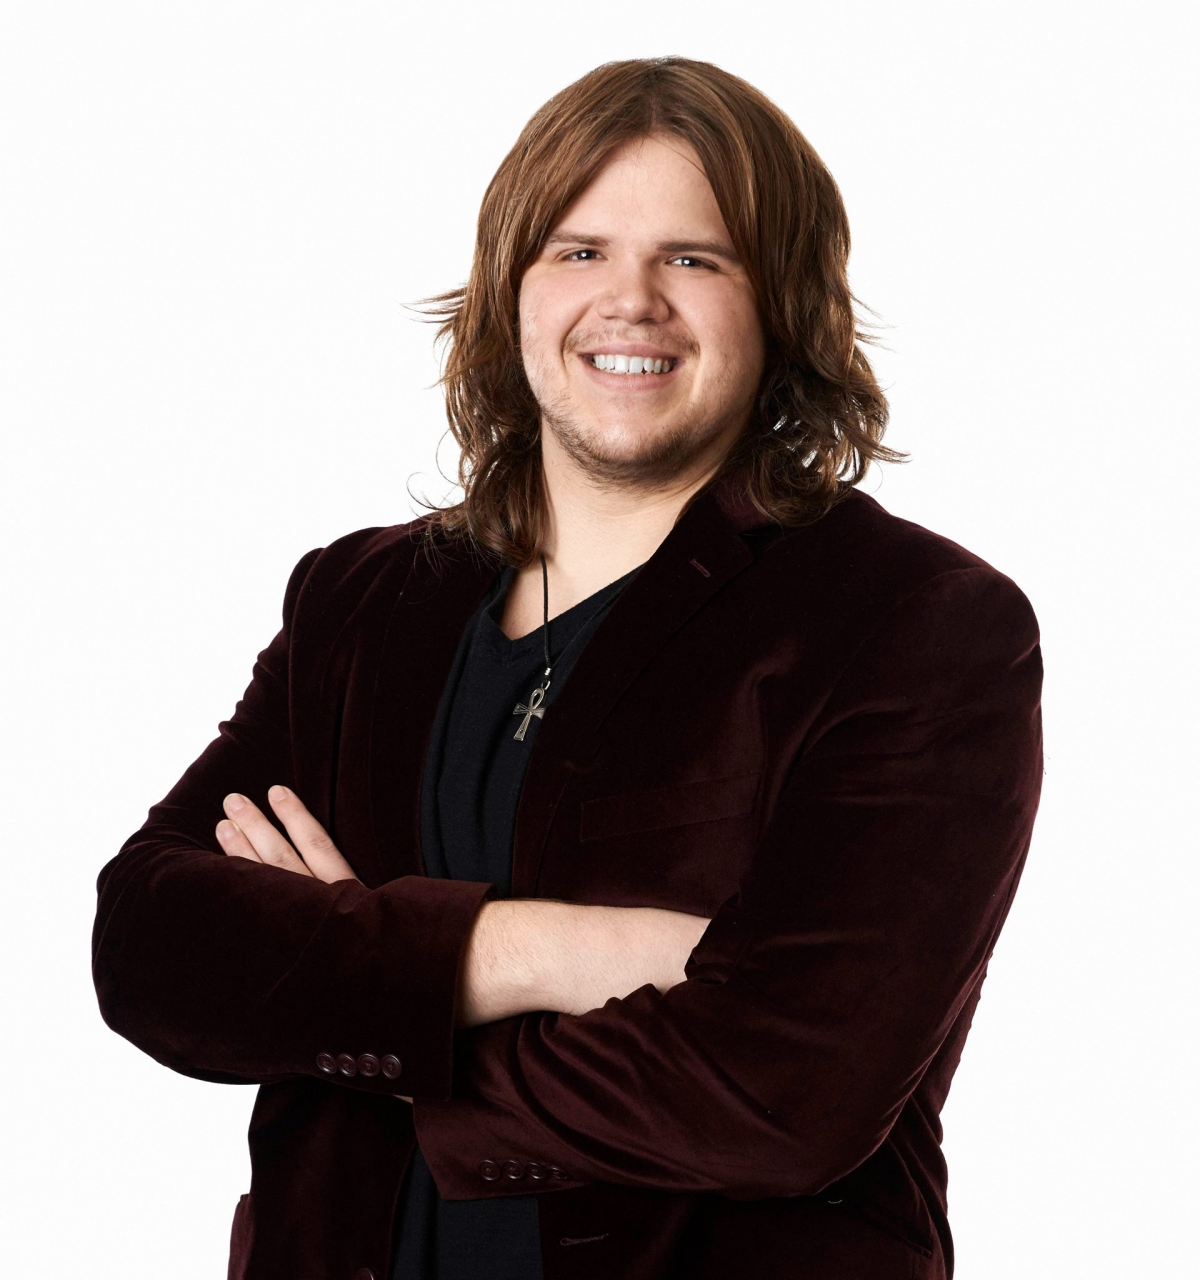 Caleb Johnson is the winner of the 13th season of American Idol.